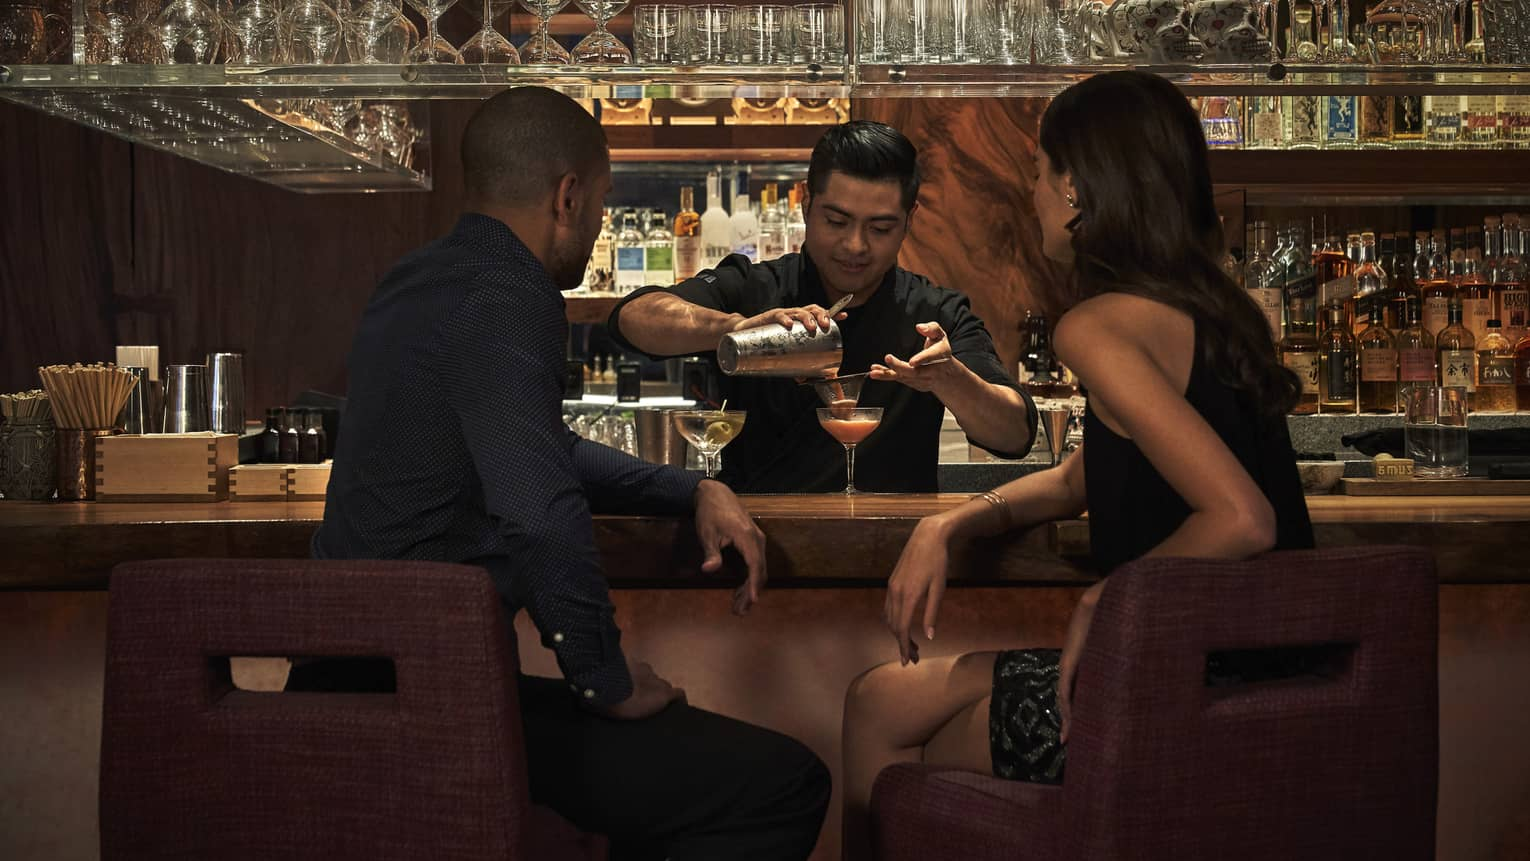 Man and woman sit a bar and watch bartender pour their martinis